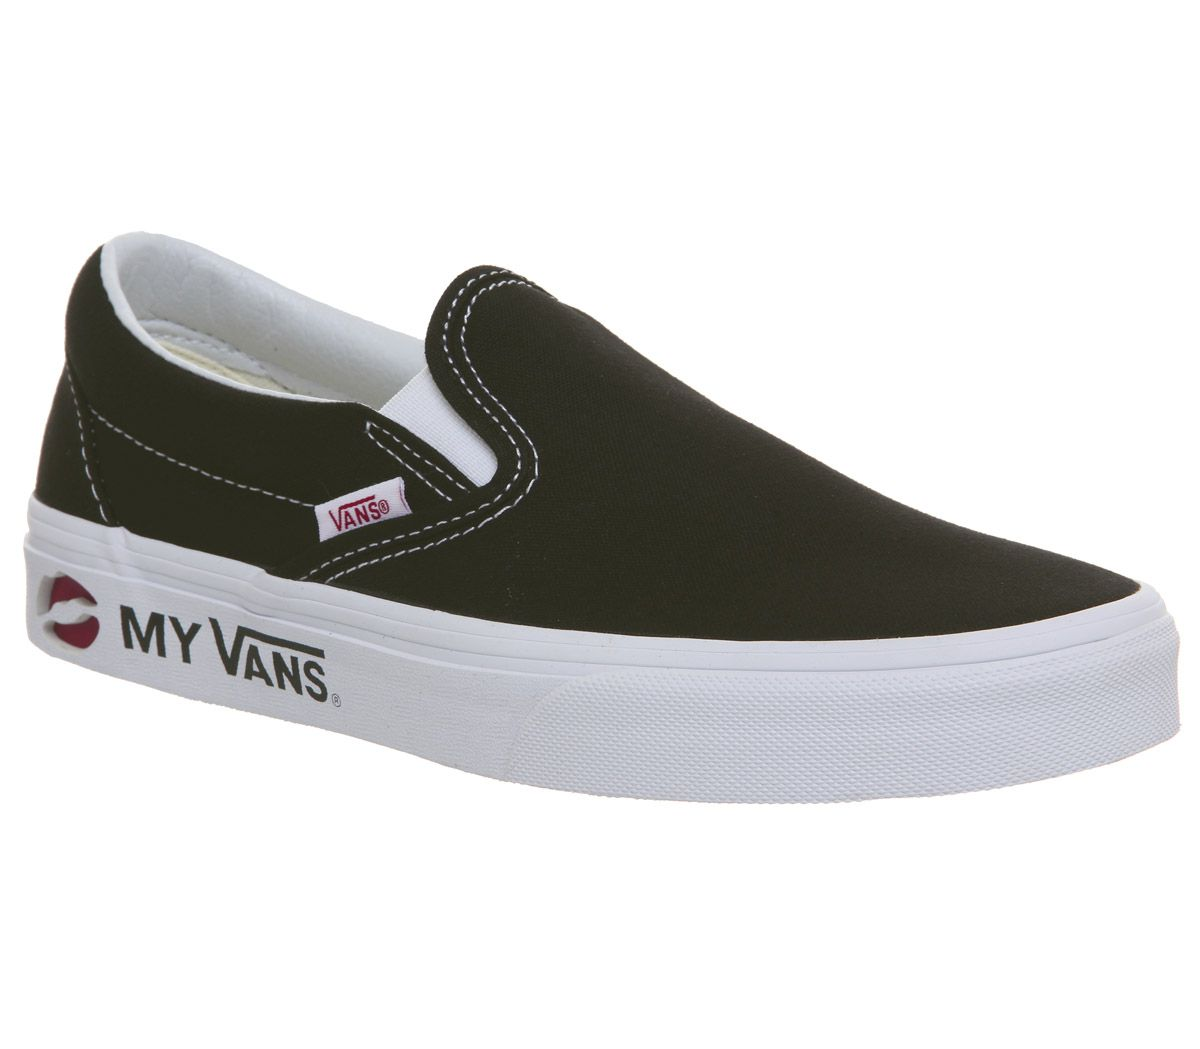 4461a9808c Vans Vans Classic Slip On Trainers Kmv Black True White Racing Red ...